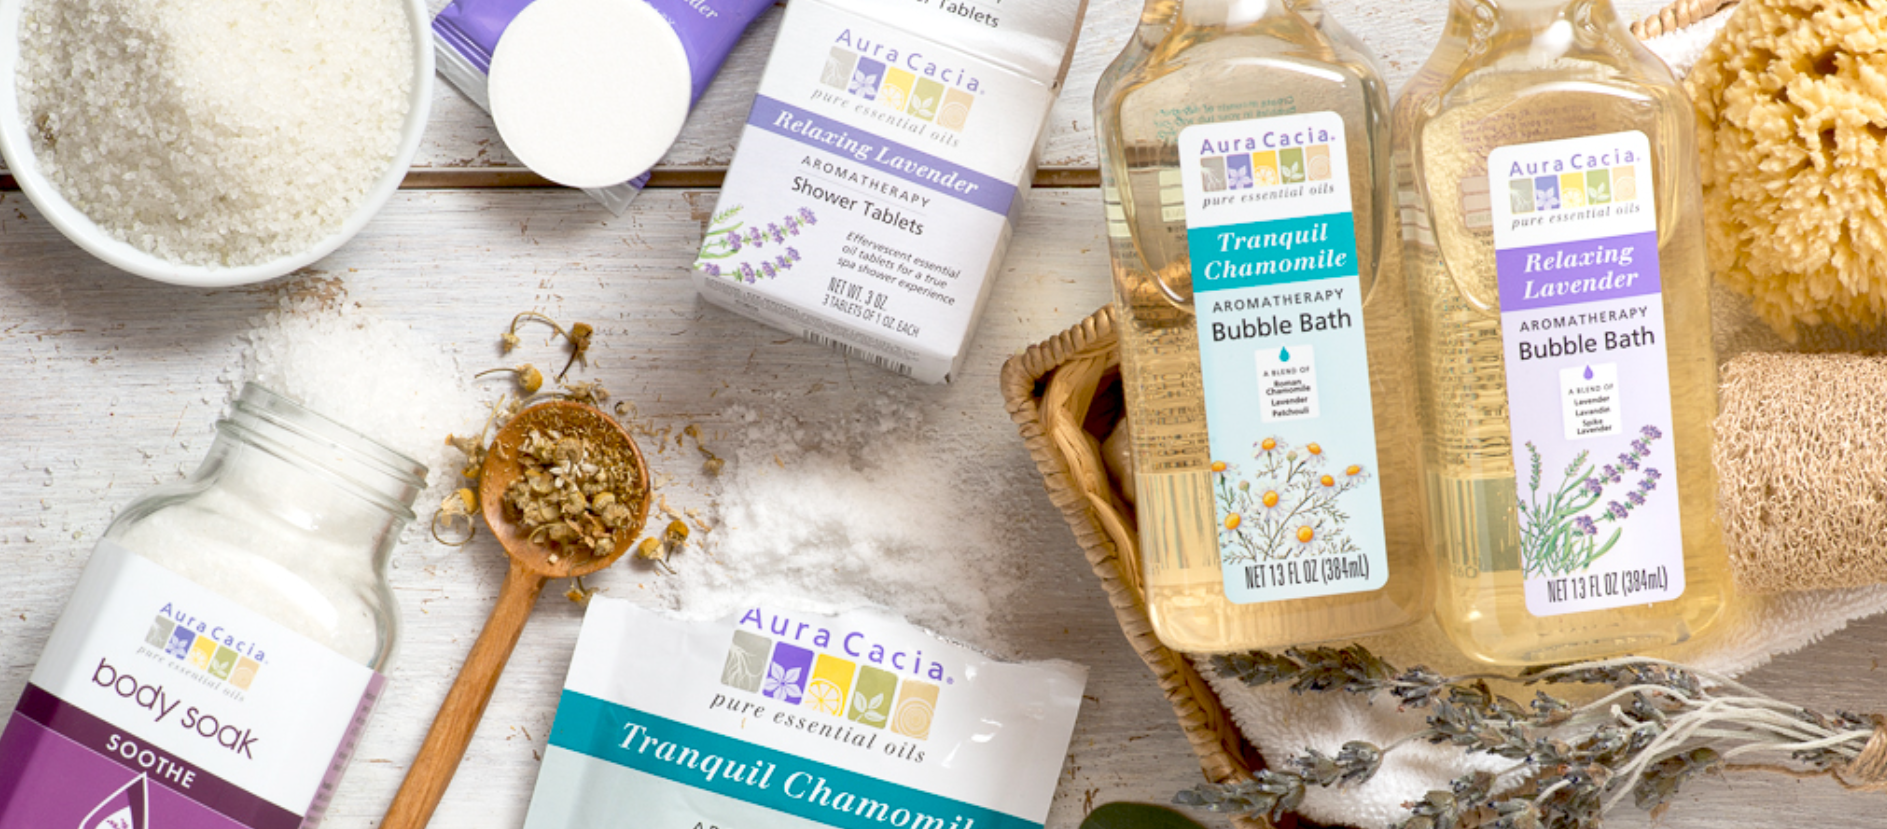 Aura Cacia has a wide array of clean, quality bath products with essential oils!